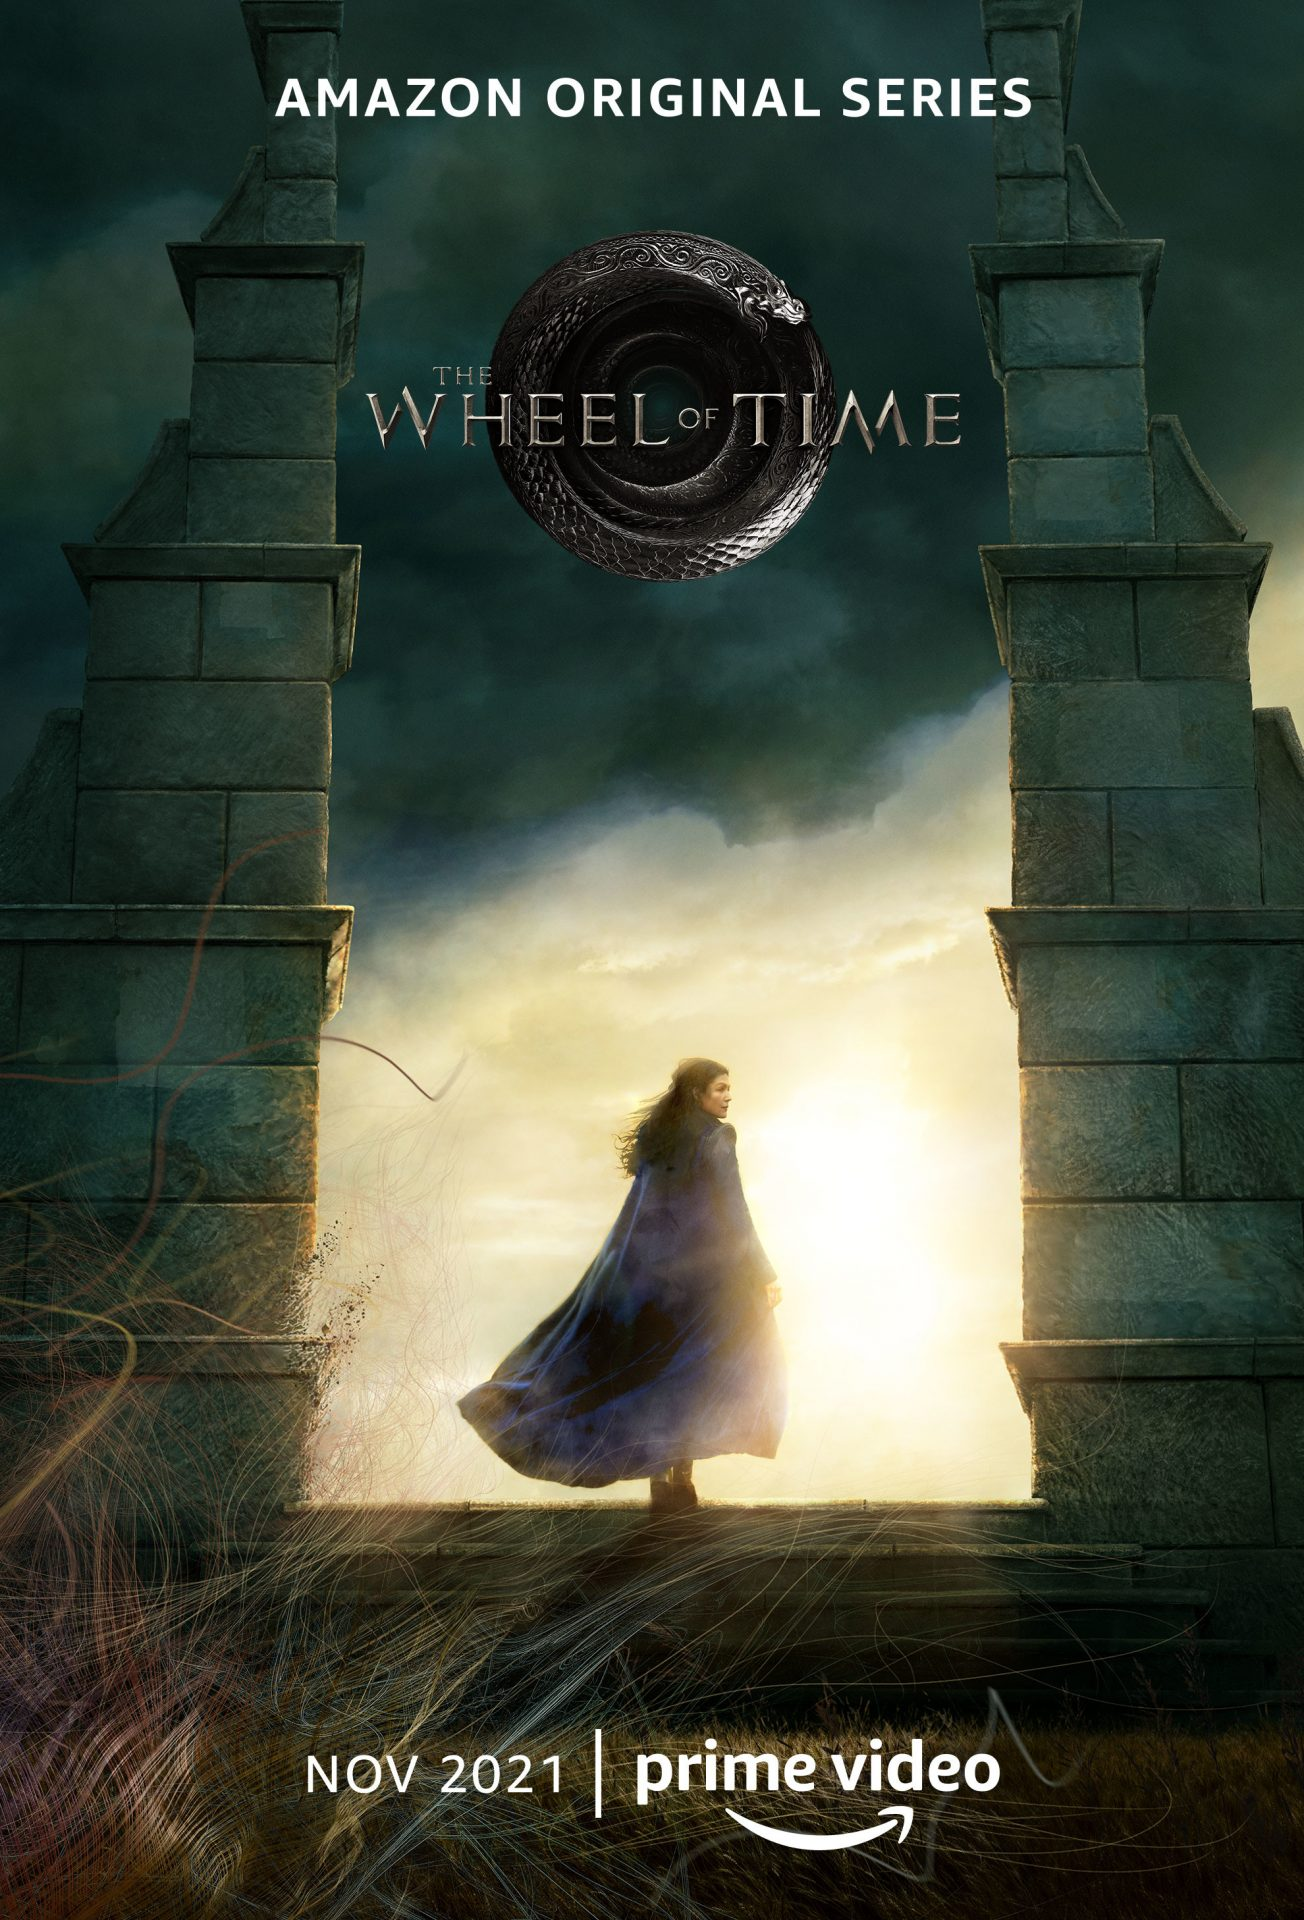 The Wheel of Time (2021) | Coming Soon Movie Trailers 2021-2022